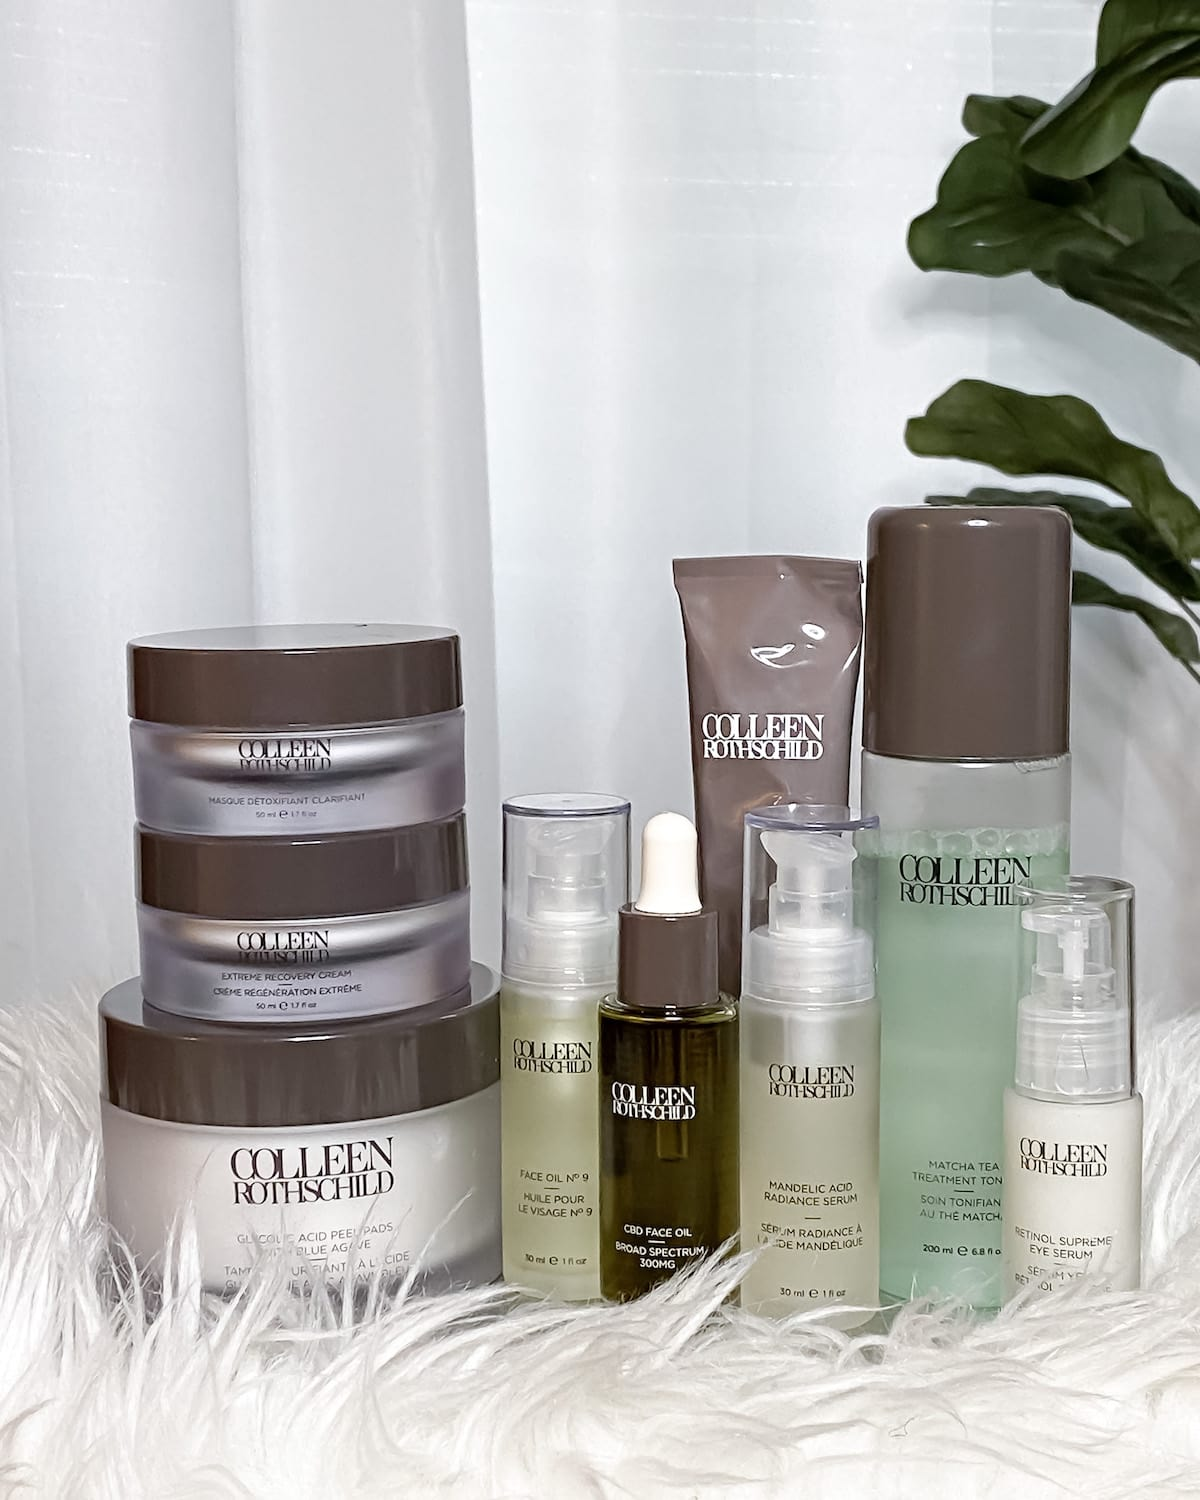 """You've heard all the """"rave"""" about how amazing Colleen Rothschild products are. But are ALL their luxury skincare and haircare products just as good? I tried as many as I could. Here's what I discovered!"""